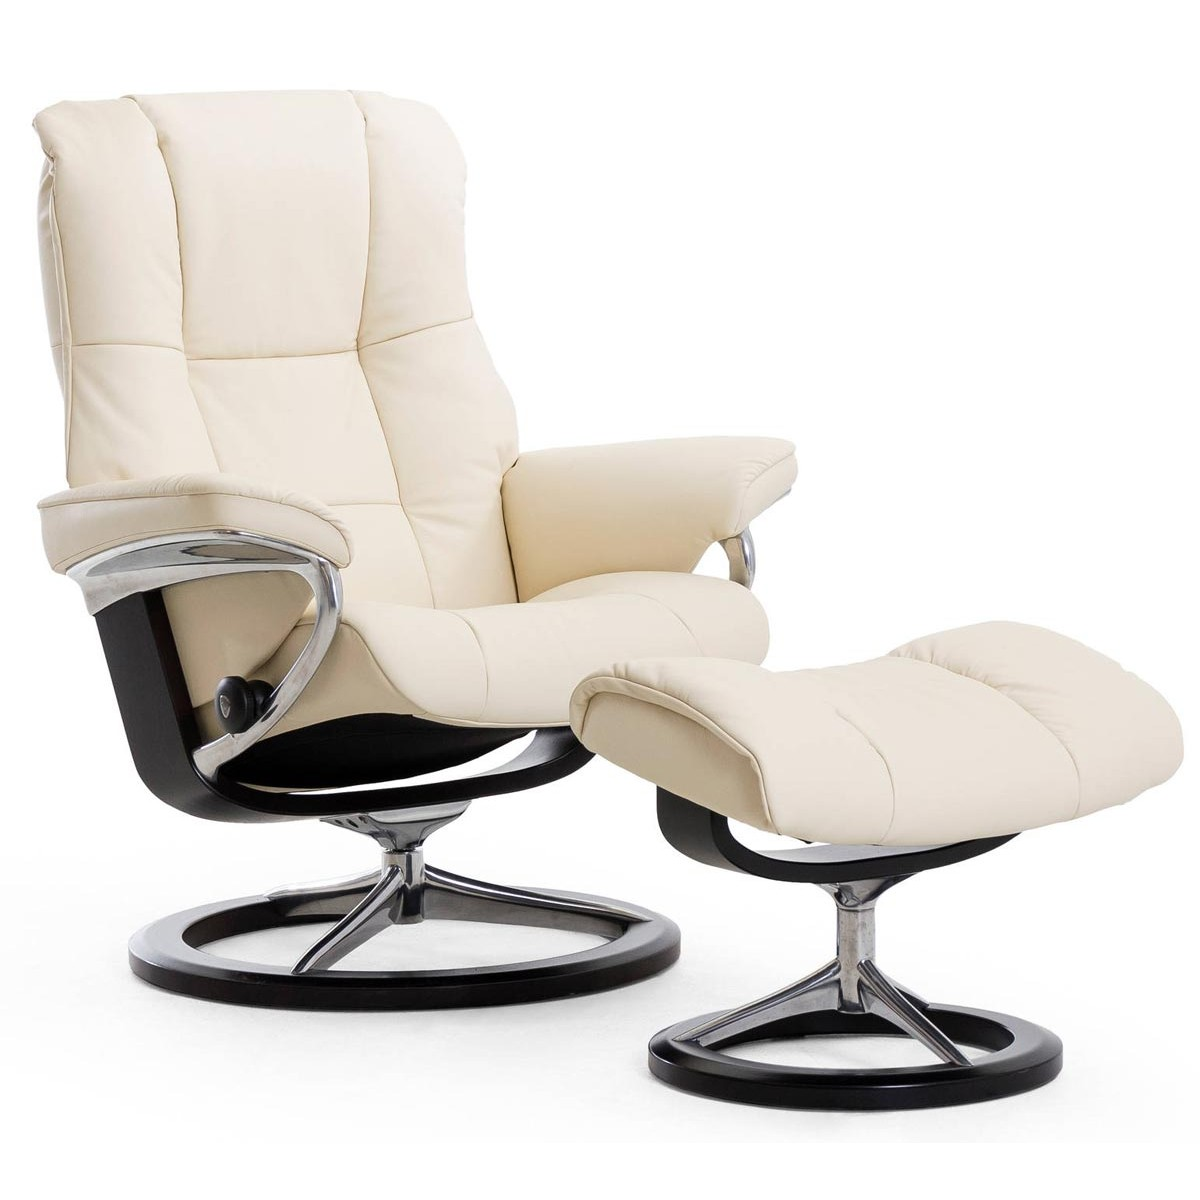 Stressless Recliners With Ottoman Stressless Mayfair Signature Recliner And Ottoman From